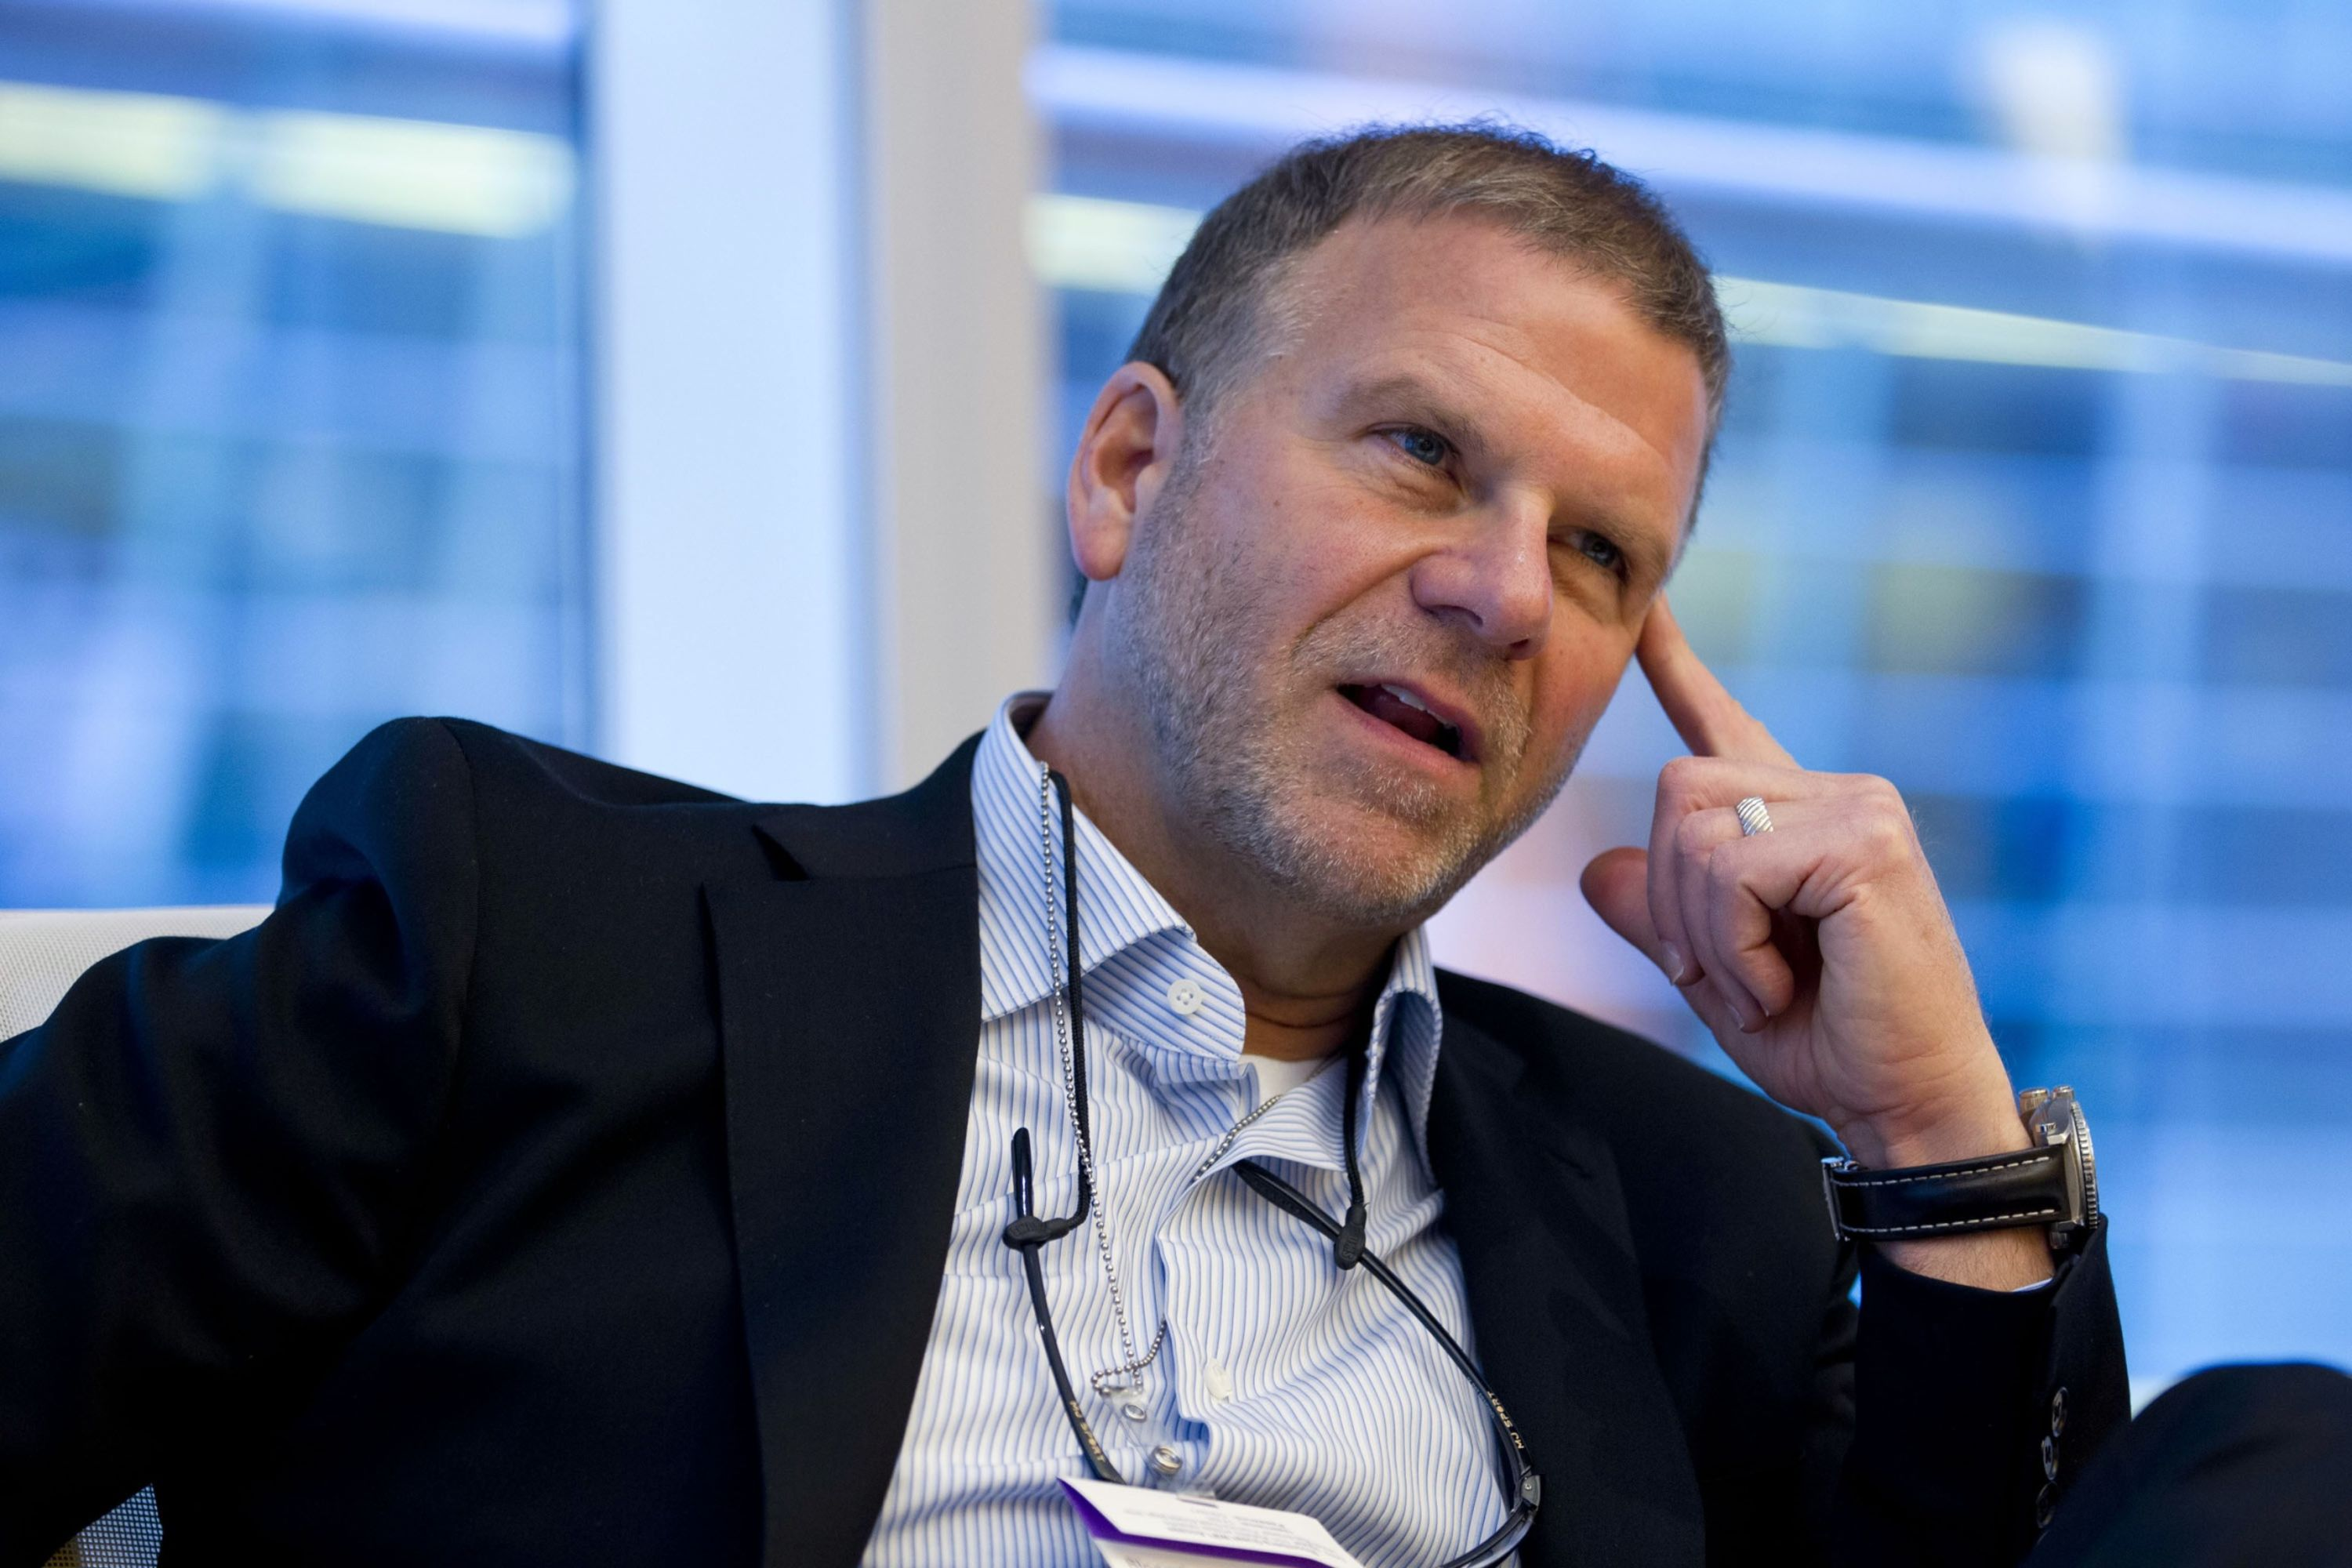 Tilman Fertitta, chief executive officer of Landry's Inc., speaks during an interview in New York, U.S. (Photo: Bloomberg)